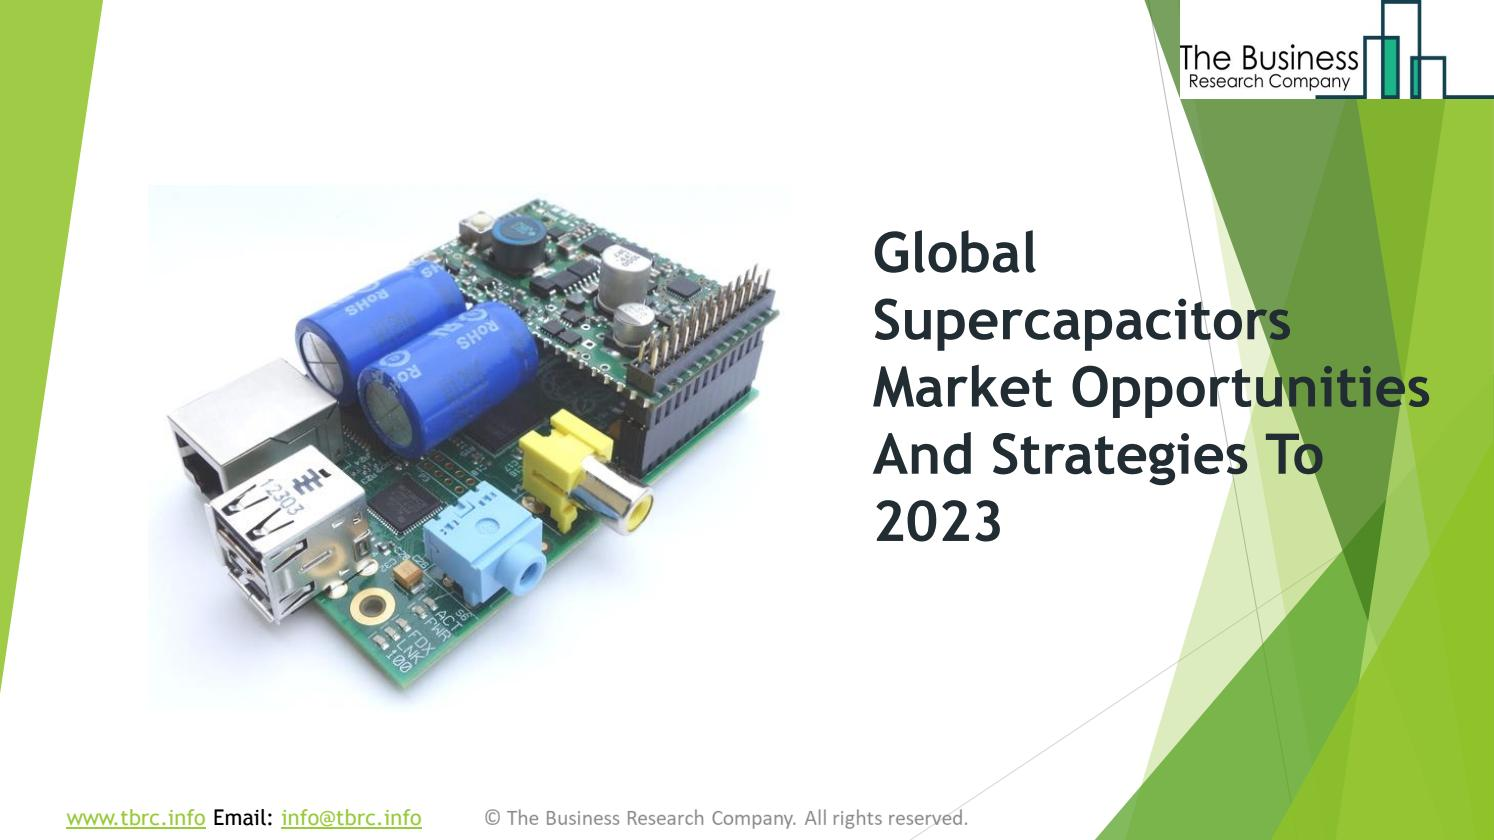 Supercapacitors Global Market Opportunities And Strategies